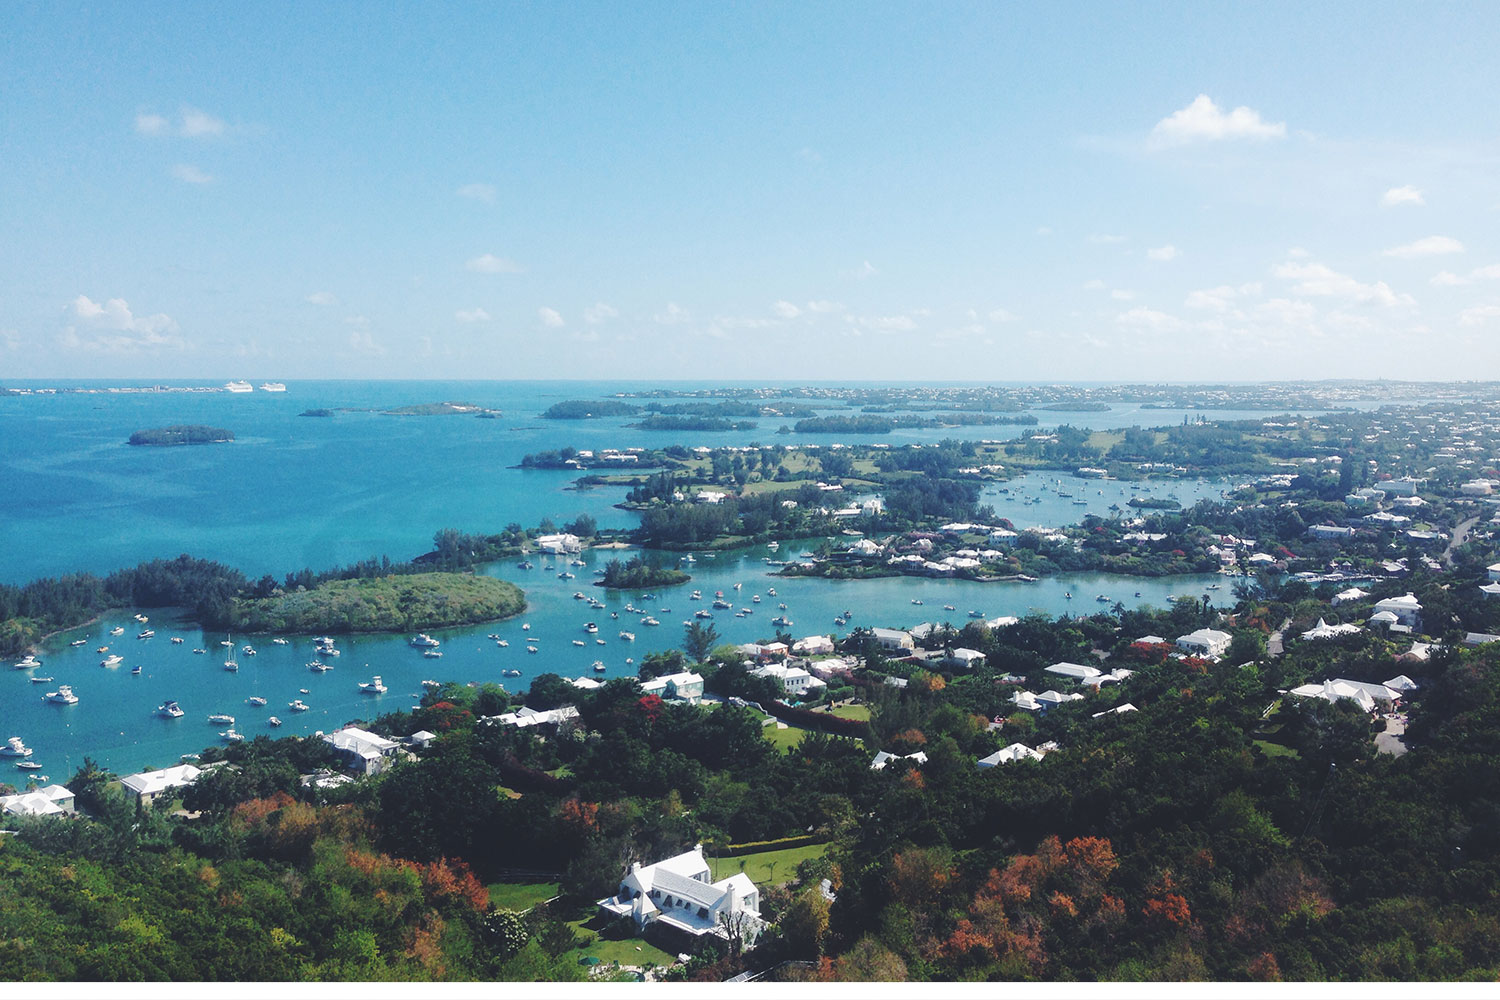 This is the view on top of Gibbs Hill Lighthouse. You can see almost the whole country. I'll be honest, I almost didn't make it up to the top. I have a major fear of heights and this sucker was high.